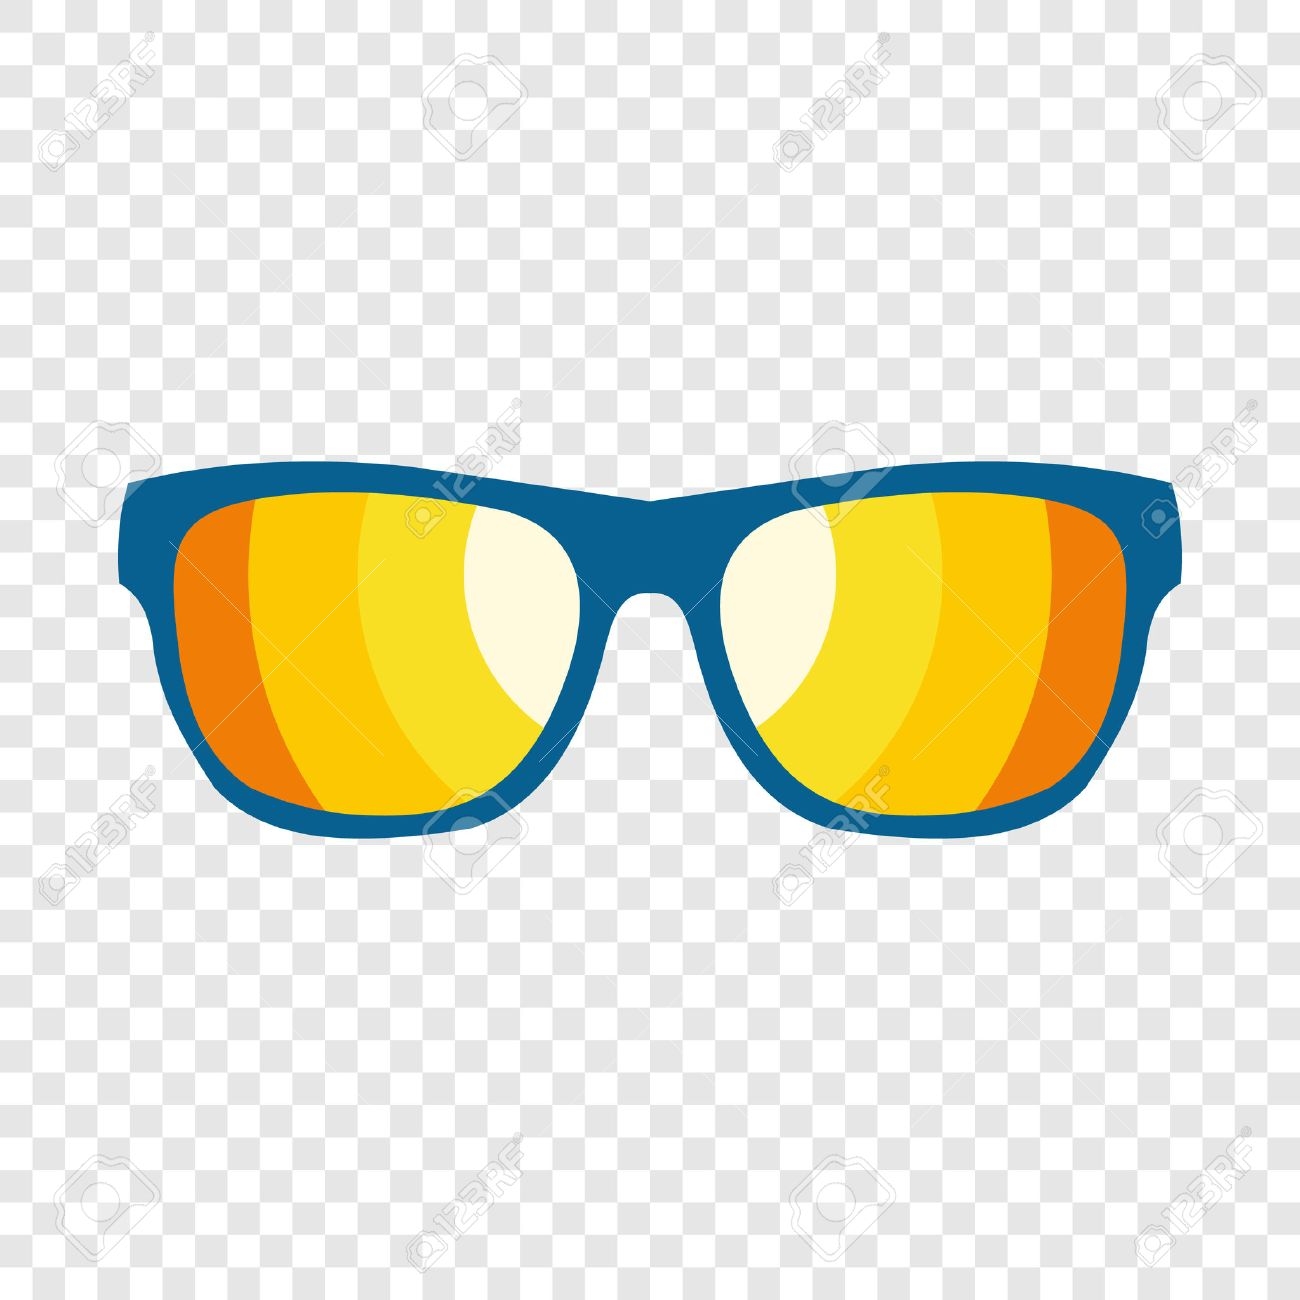 Sunglasses icon in flat style on transparent background - 51730559